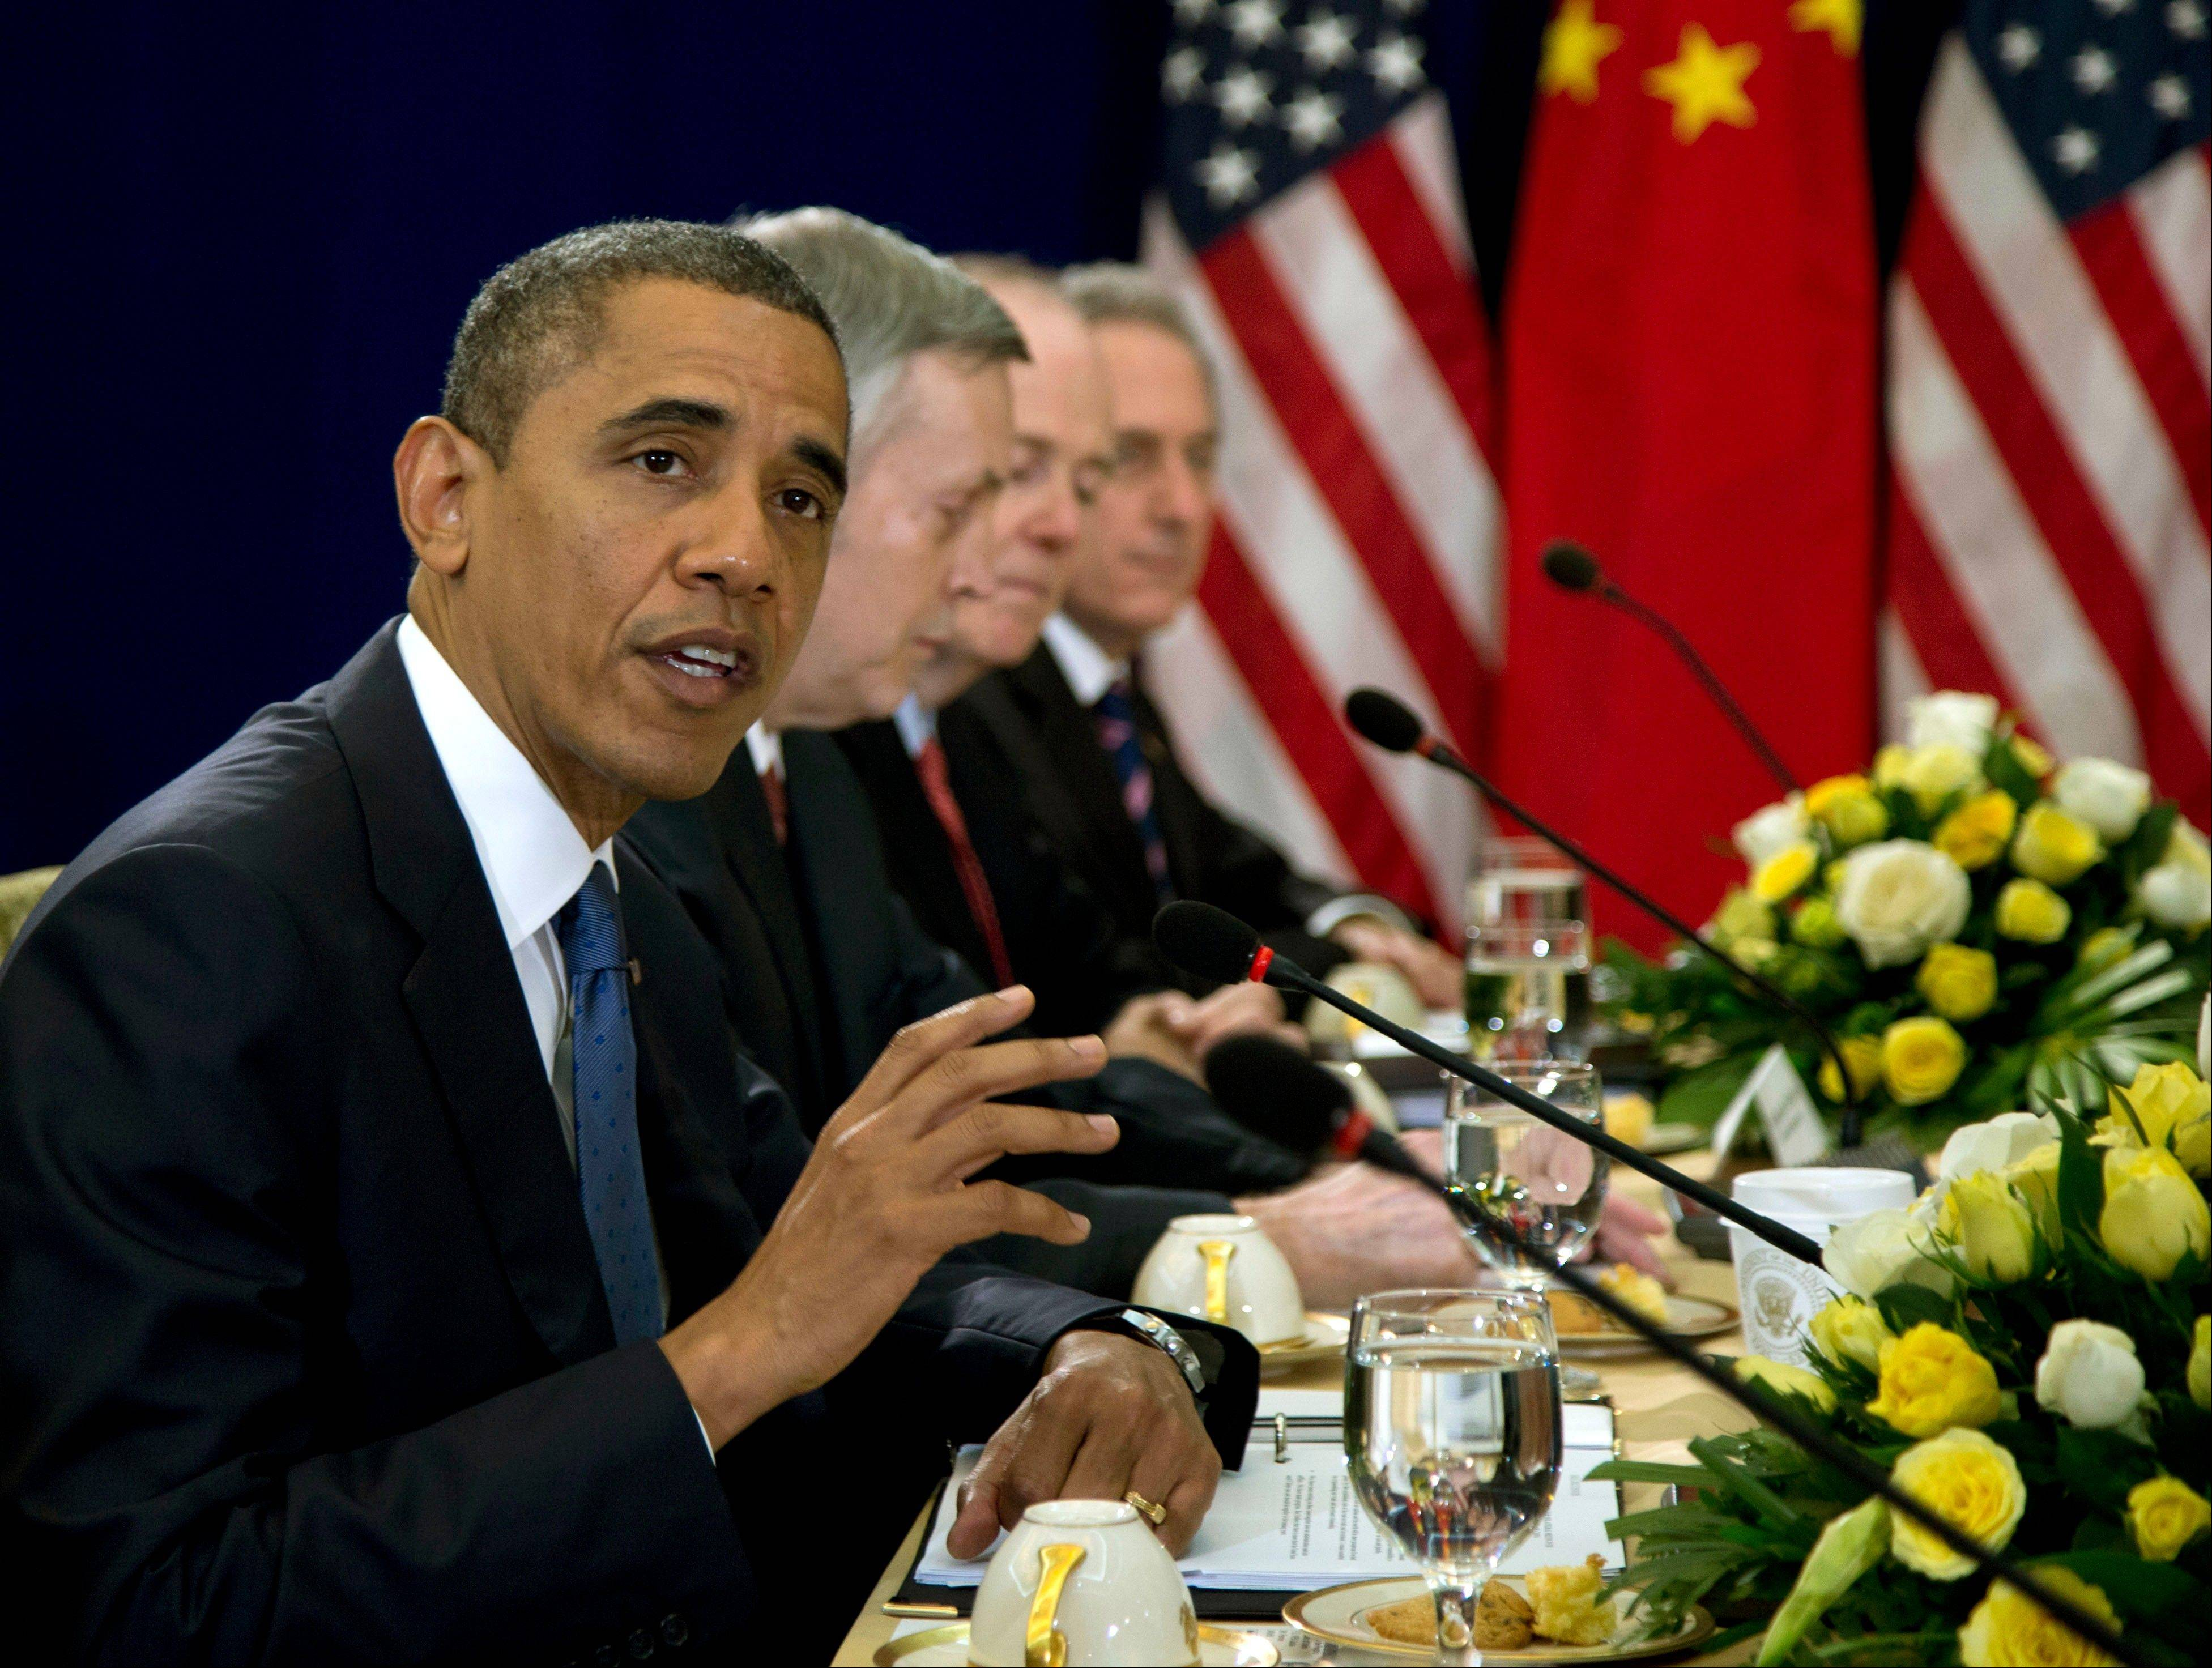 U.S. President Barack Obama gestures as he speaks during a meeting with Chinese Premier Wen Jiabao, unseen, during the East Asia Summit at the Peace Palace in Phnom Penh, Cambodia, Tuesday.